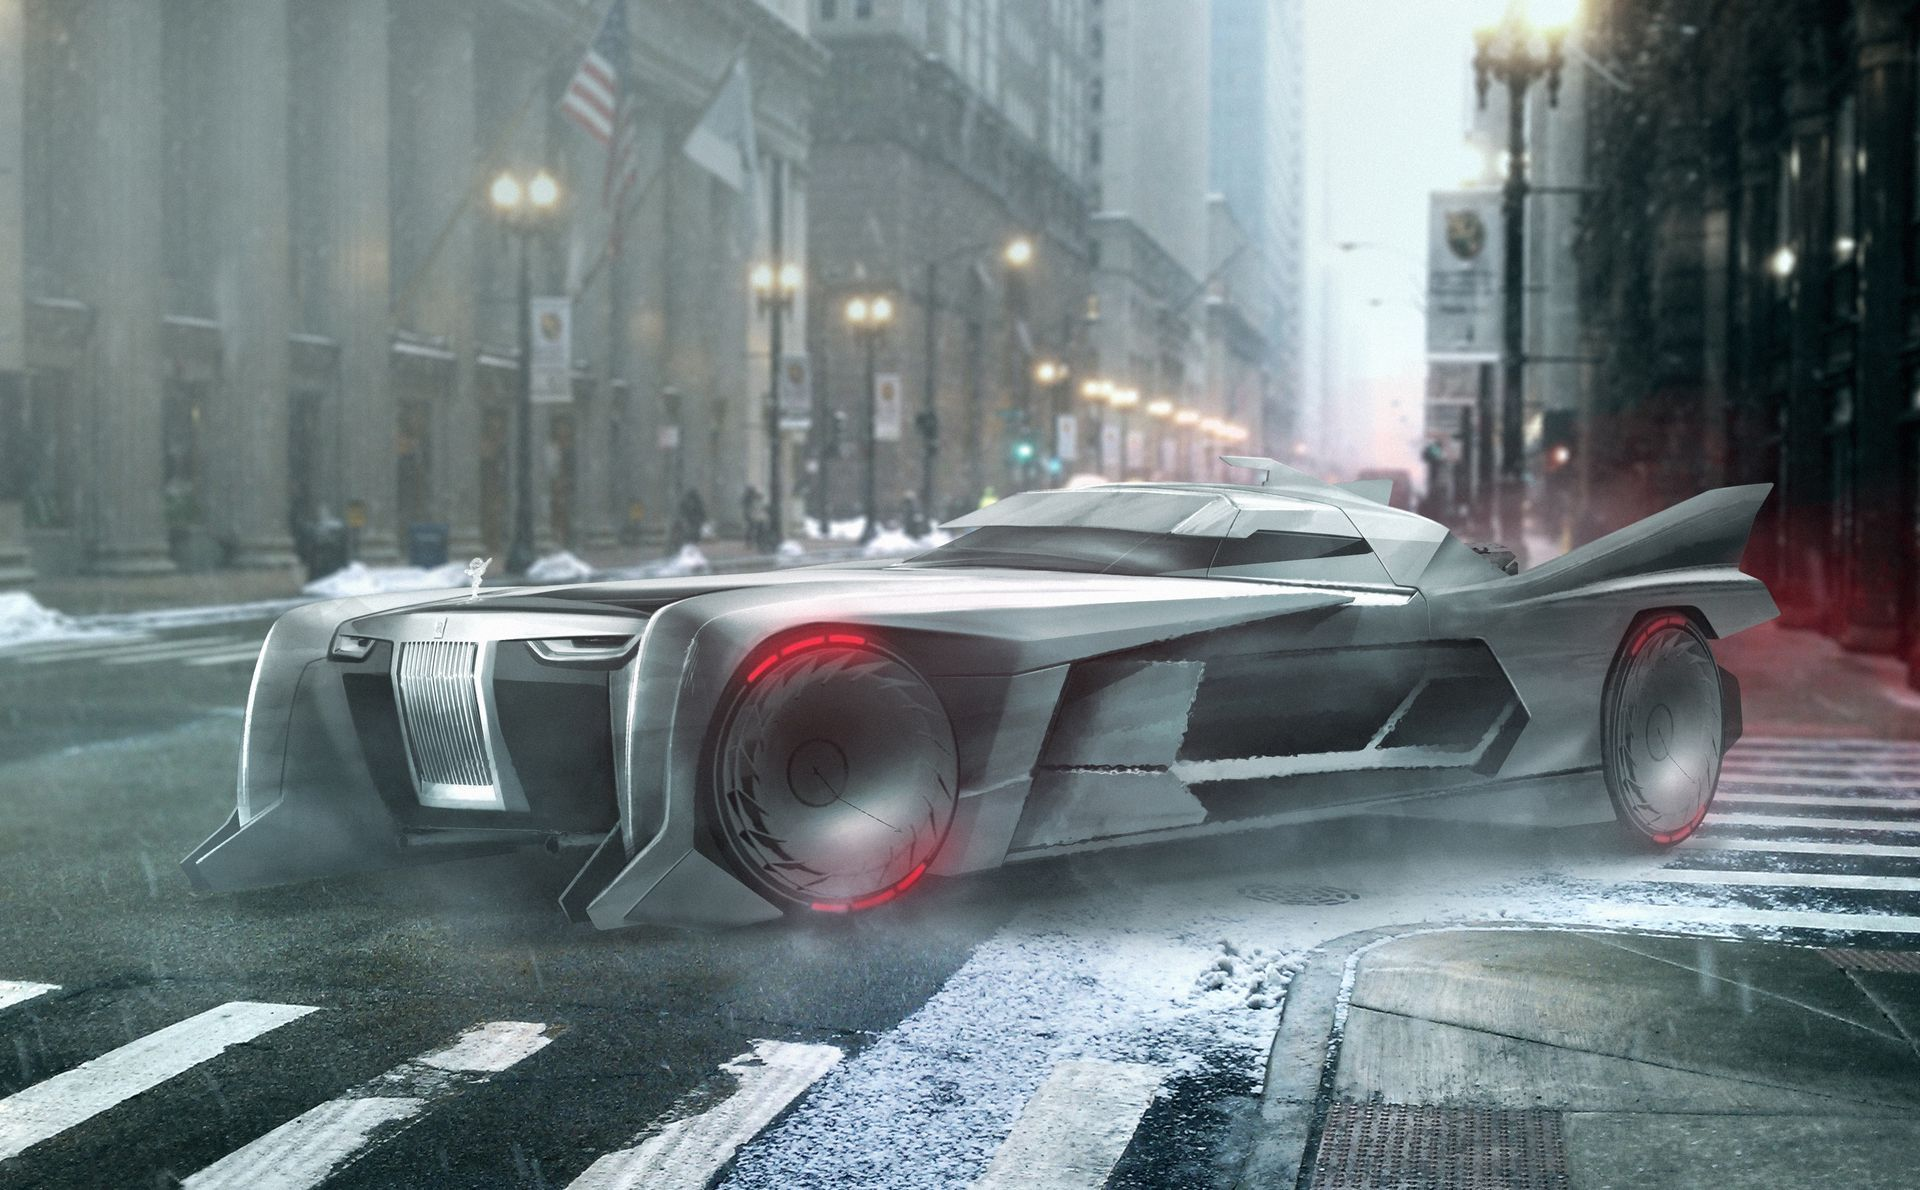 A Rolls Royce Batman Would Approve Of And More Geeky Concepts That